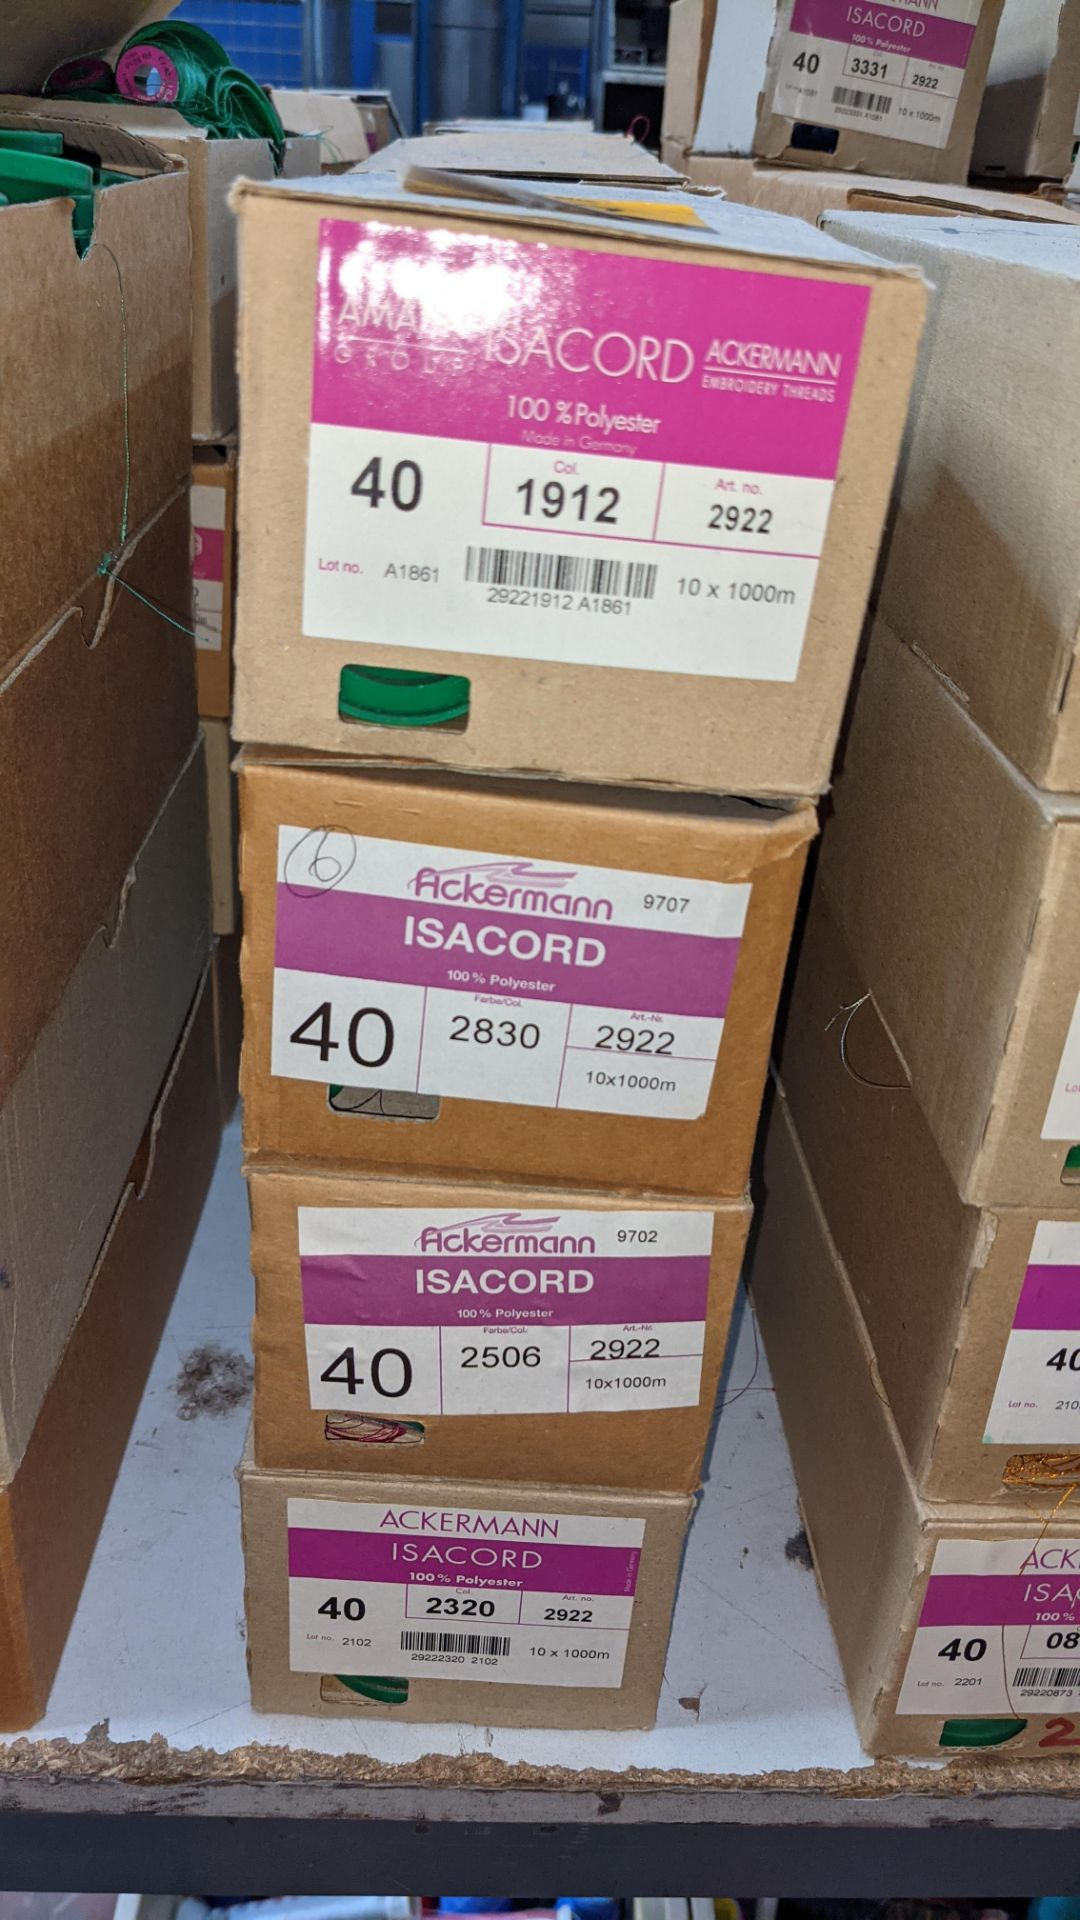 16 boxes of Ackermann Isacord (40) polyester thread - Image 3 of 9